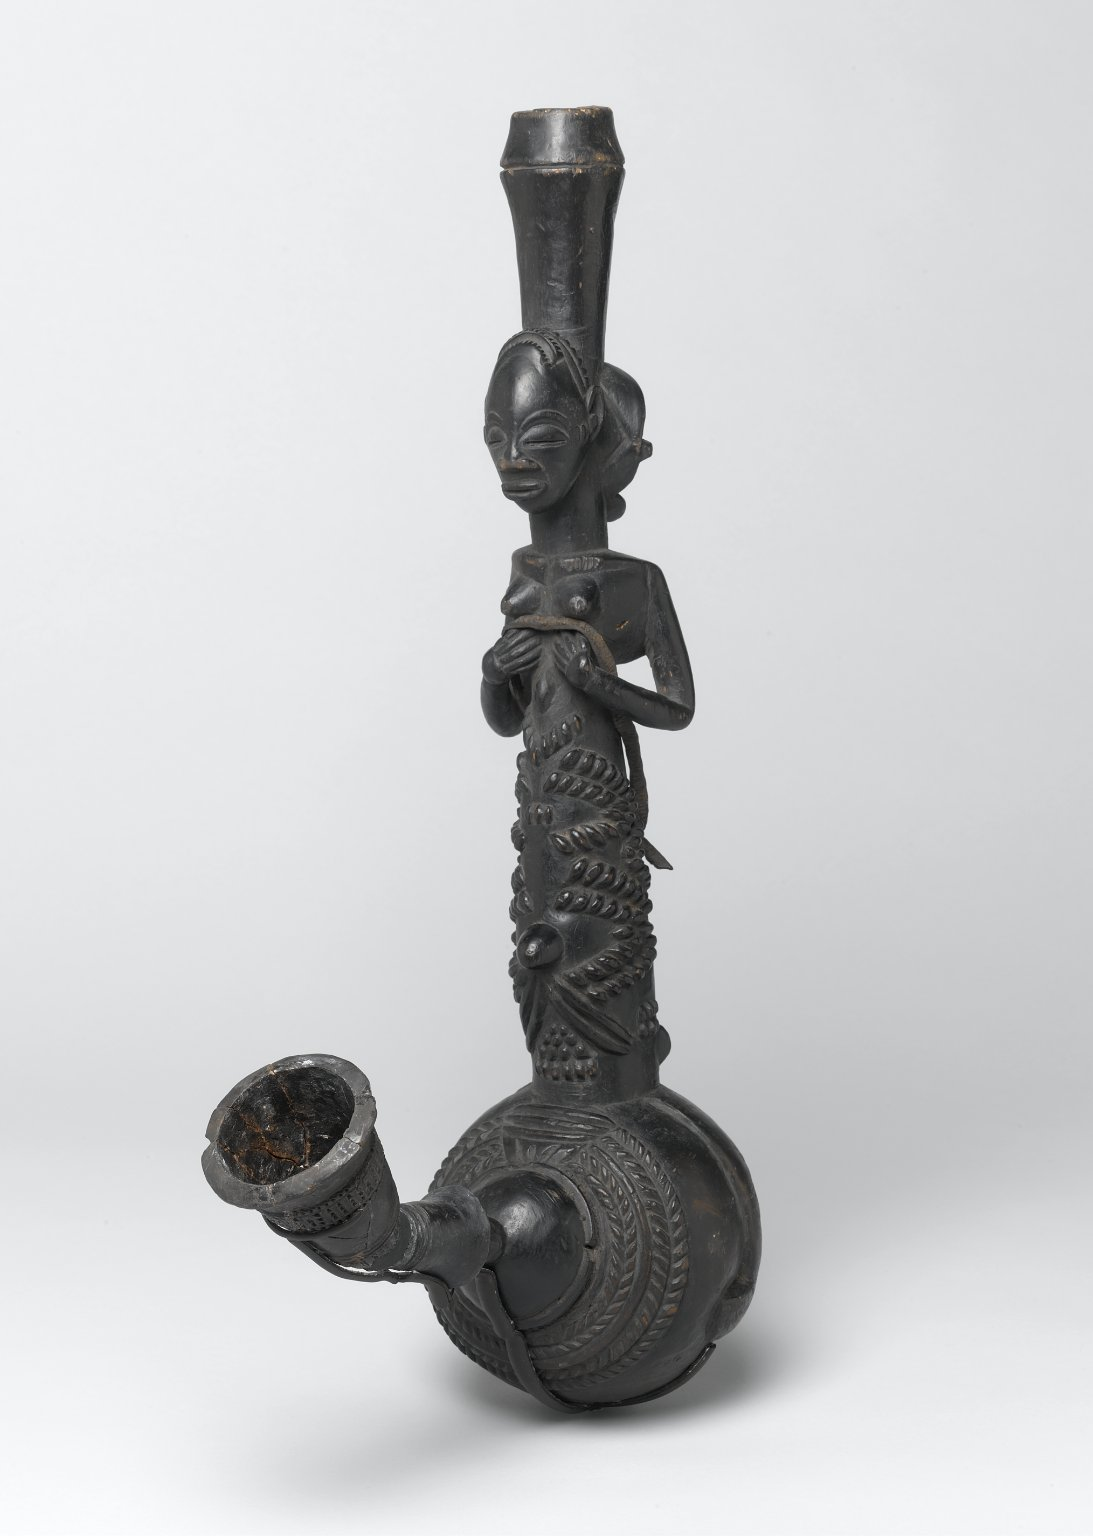 hight resolution of file brooklyn museum 22 1108a b water pipe 2 jpg